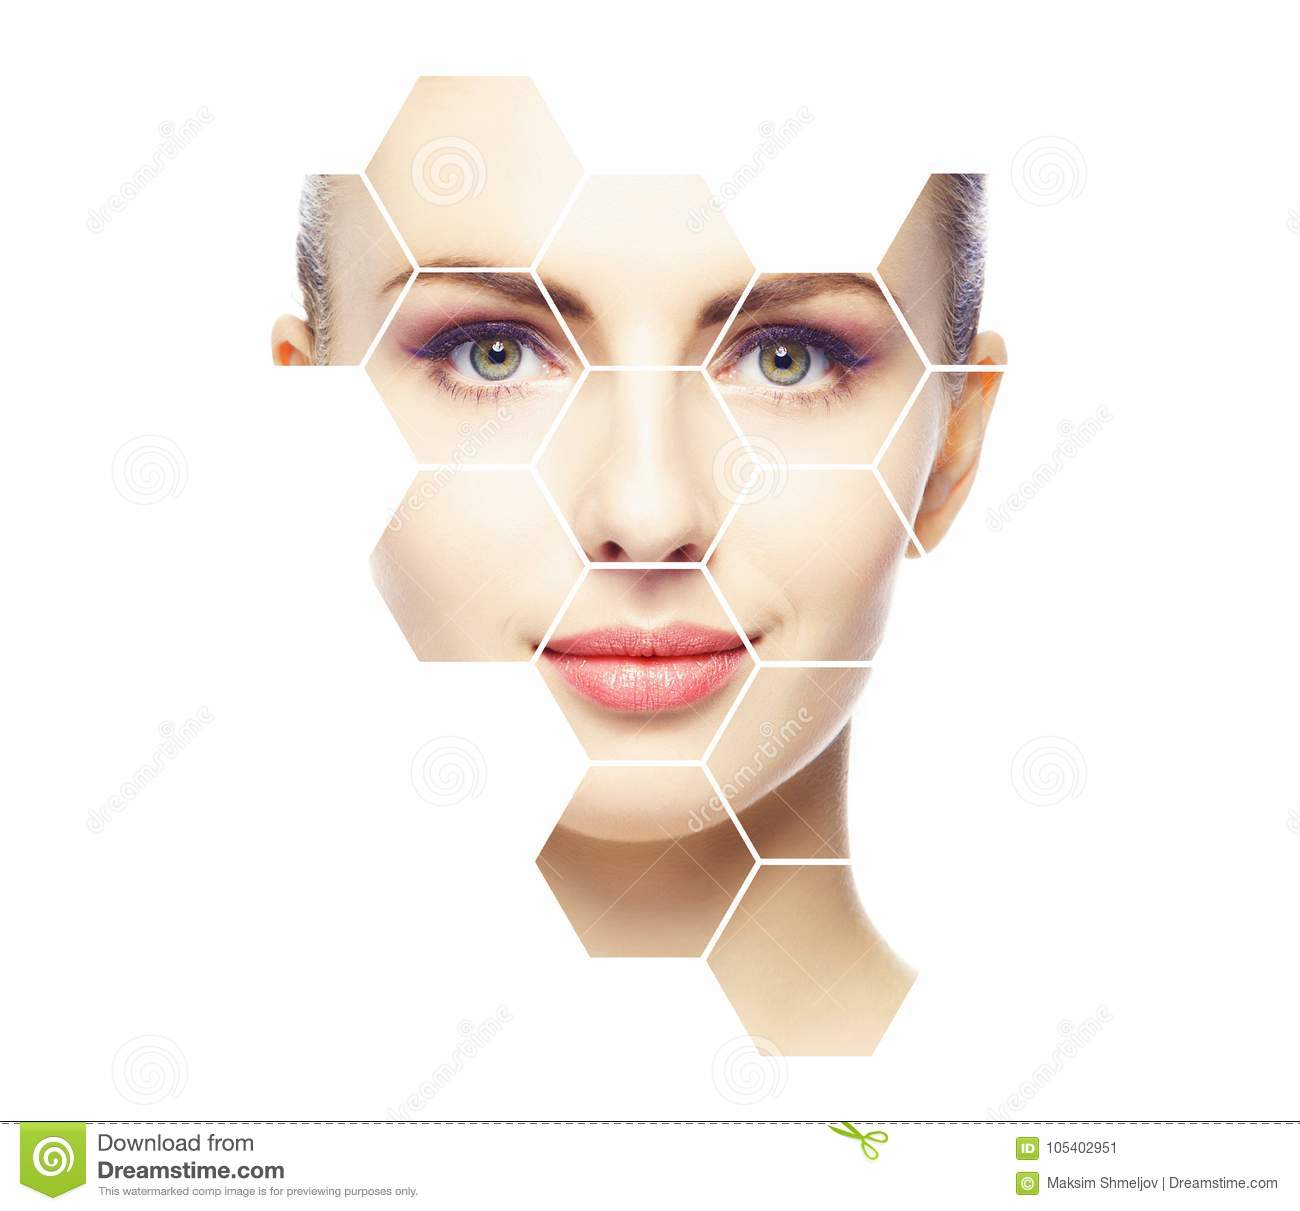 Beautiful face of young and healthy girl. Plastic surgery, skin care, cosmetics and face lifting concept.